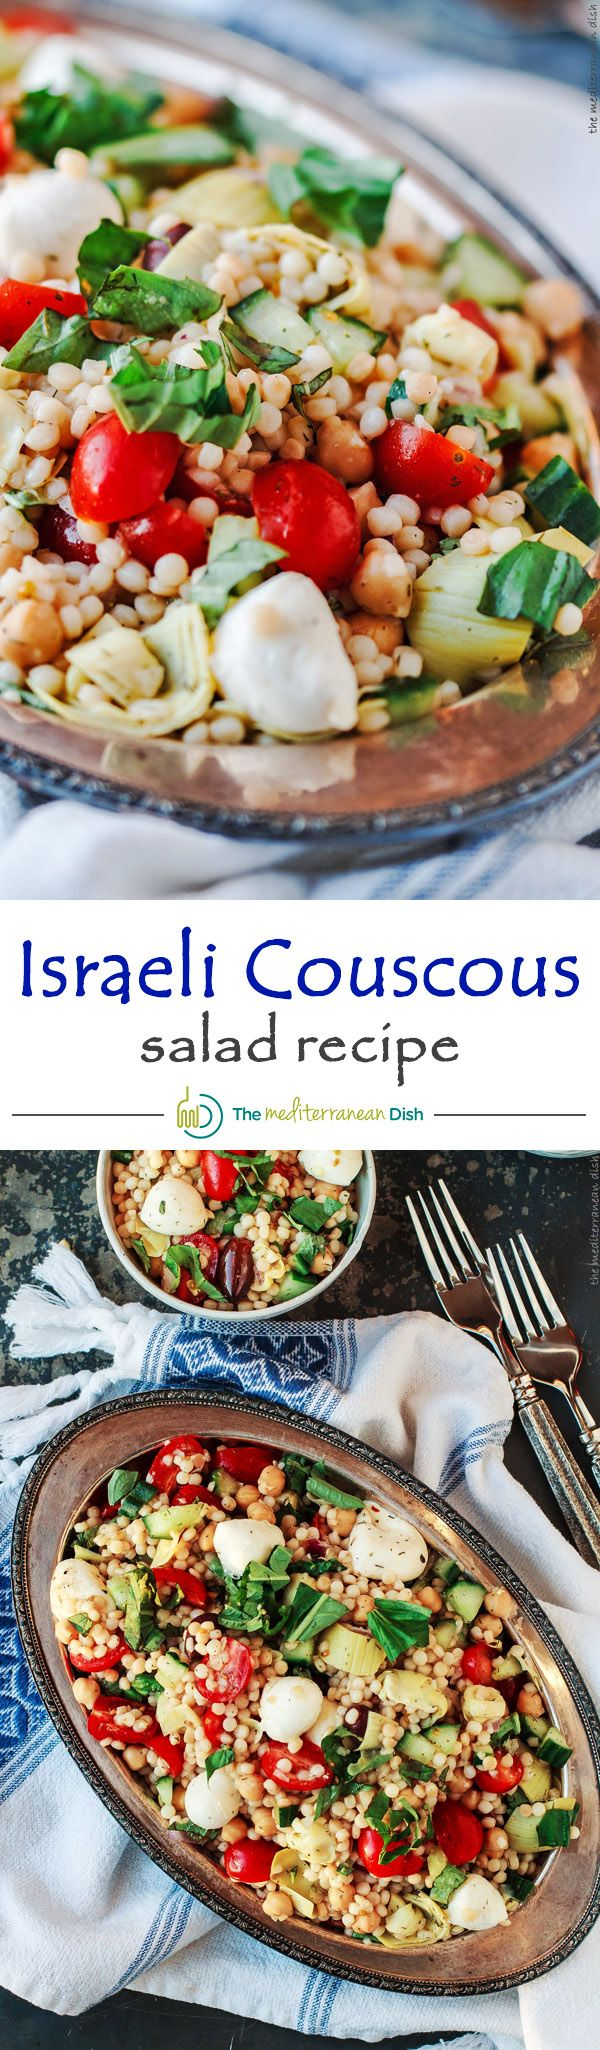 how to cook isreali couscos